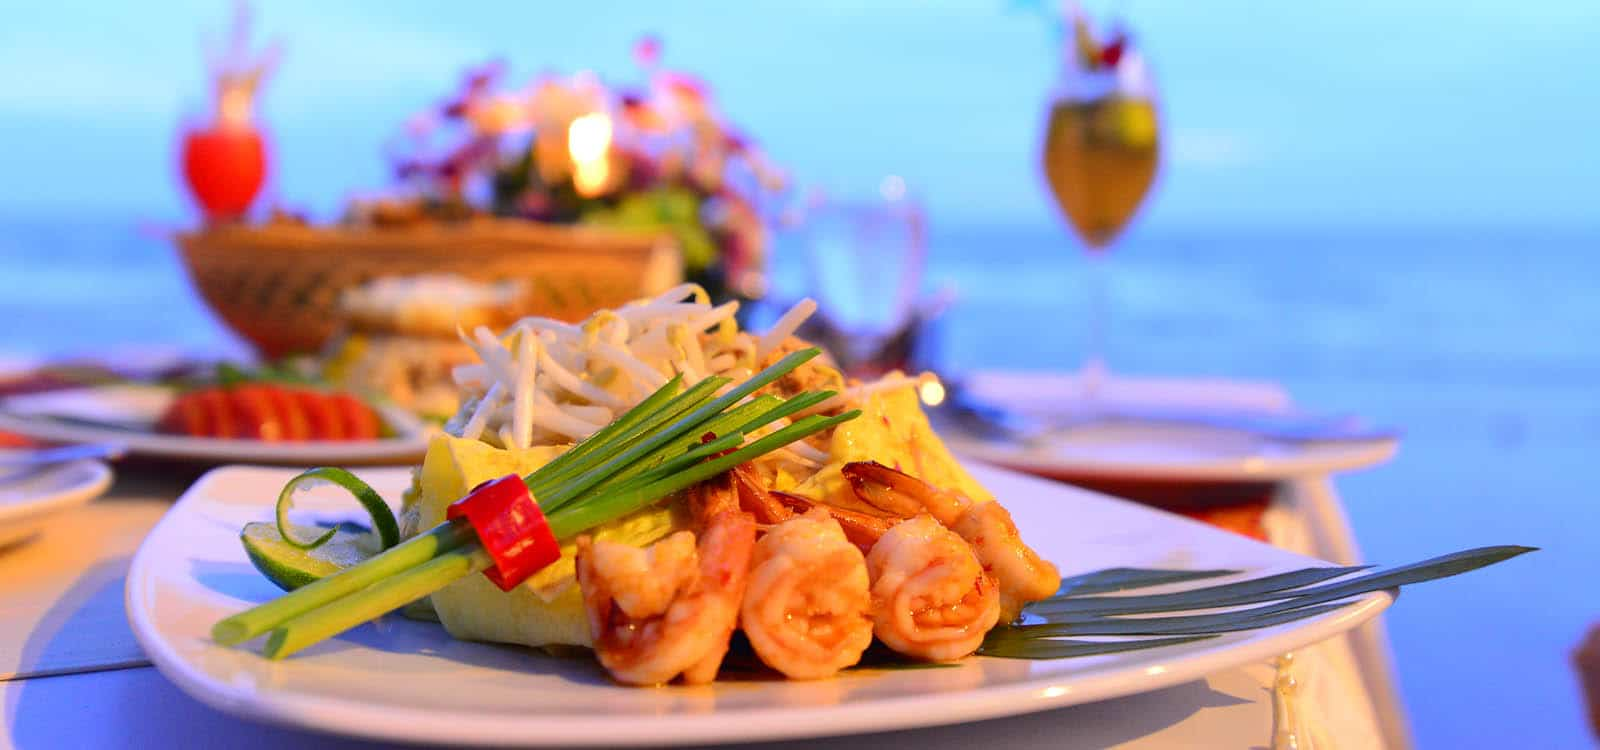 Dominica cuisine is created with strong Creole influences, with dishes featuring variations of chicken, salad and rise.